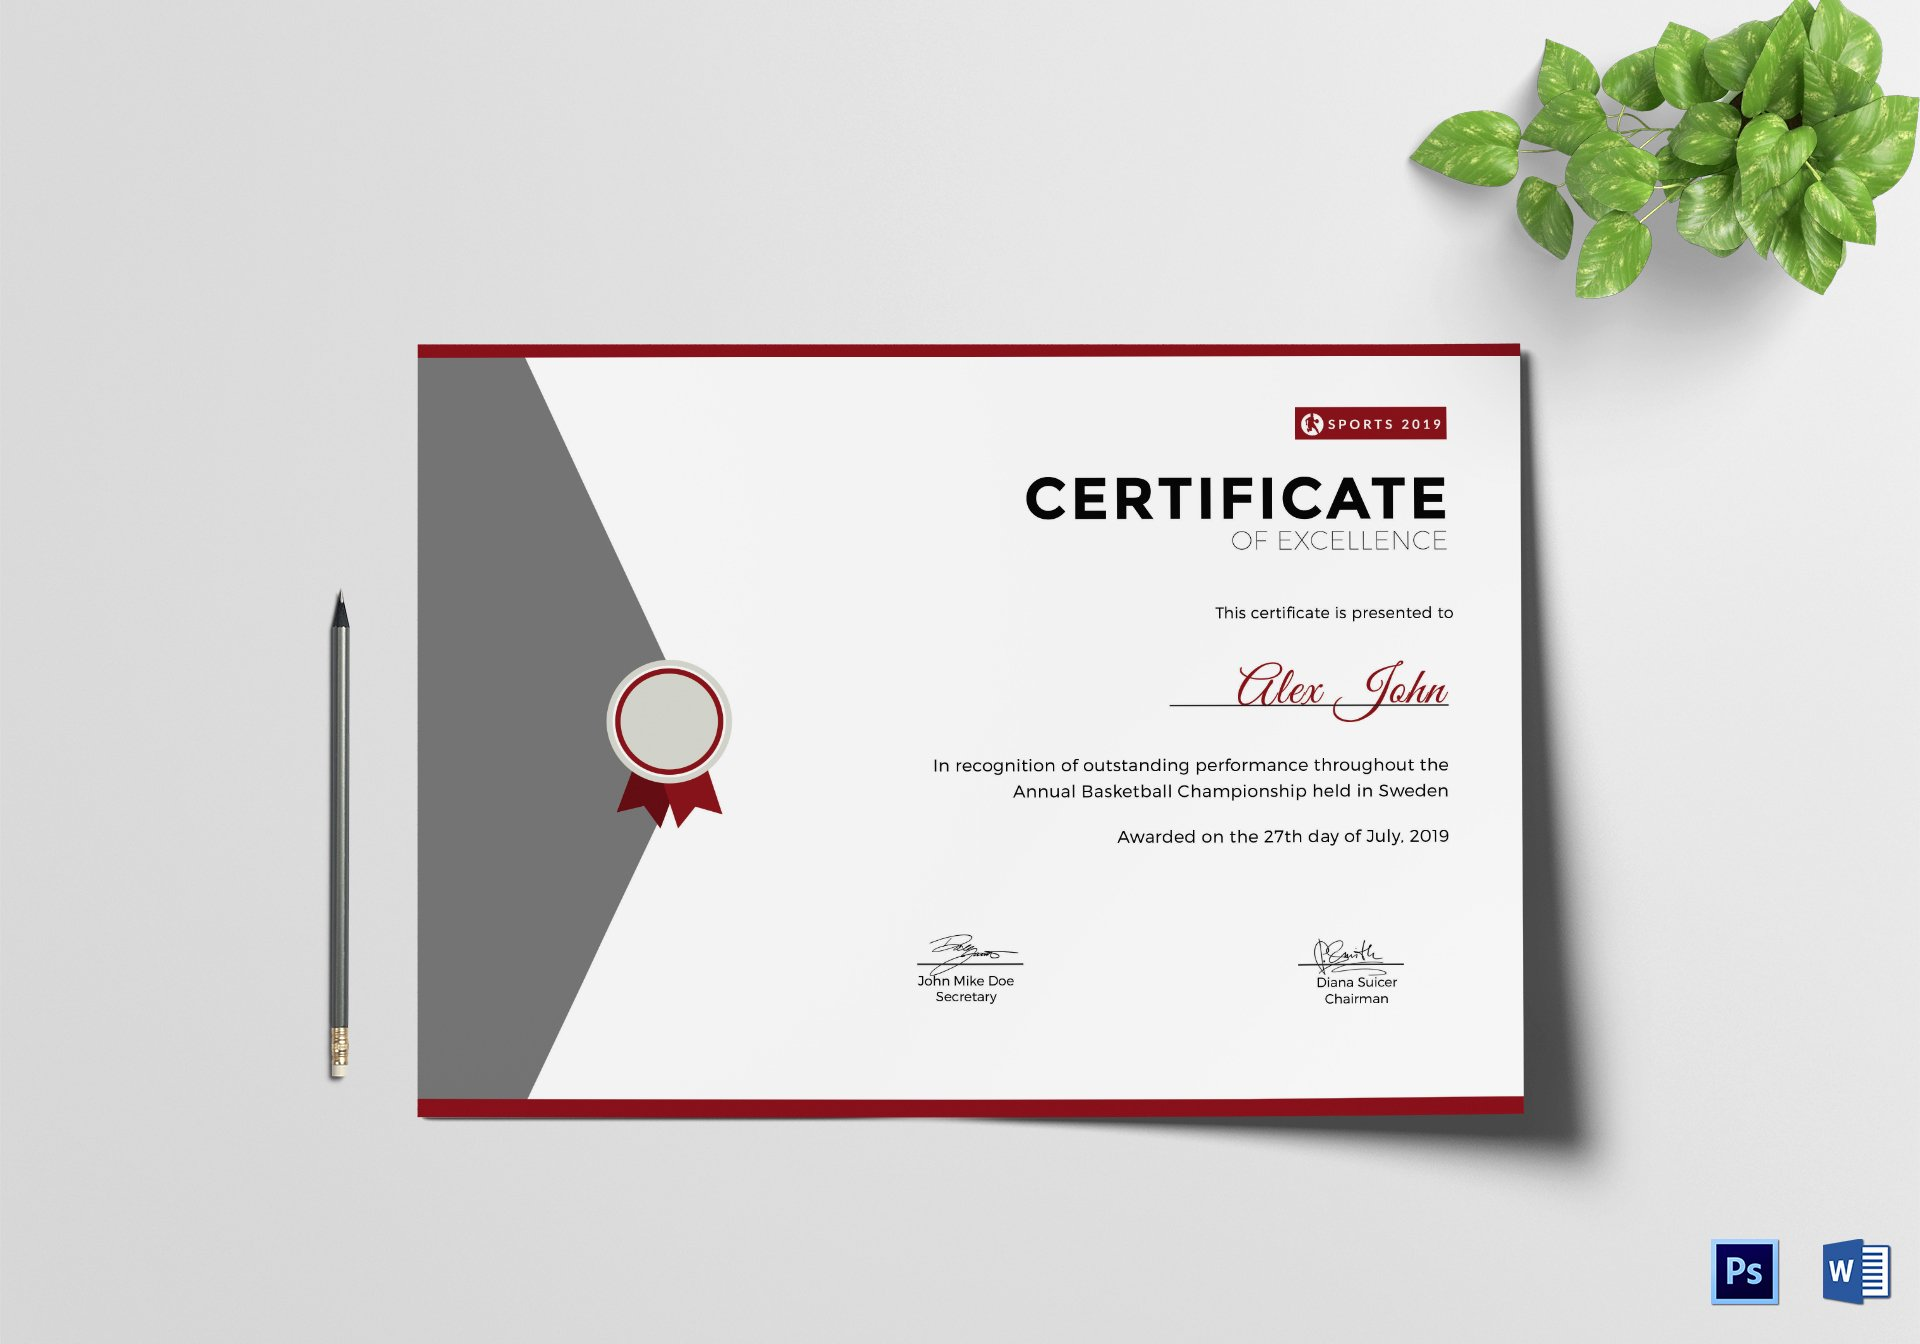 Certificate Of Excellence Template Unique Prize Excellence Certificate Design Template In Psd Word